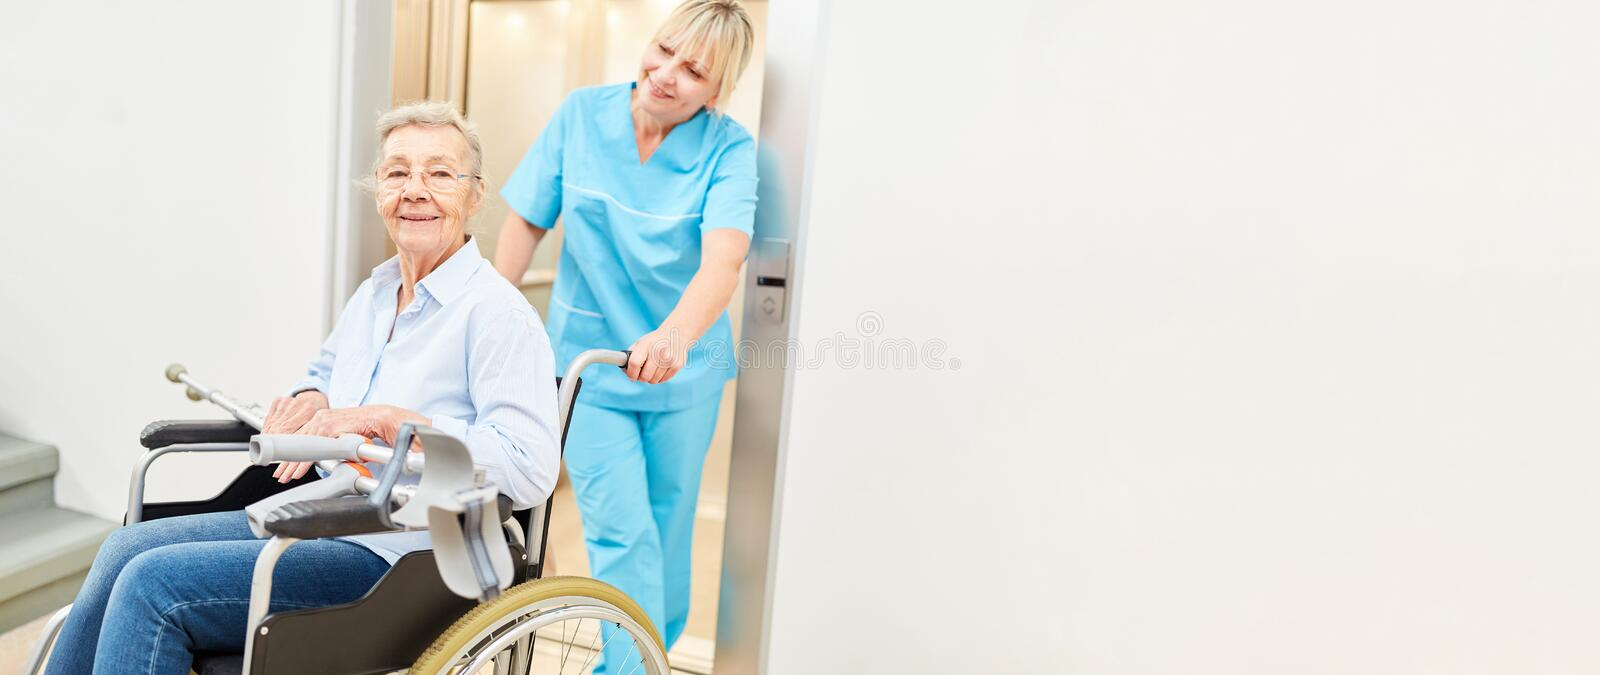 Old woman in wheelchair is being cared for by nurse royalty free stock photos